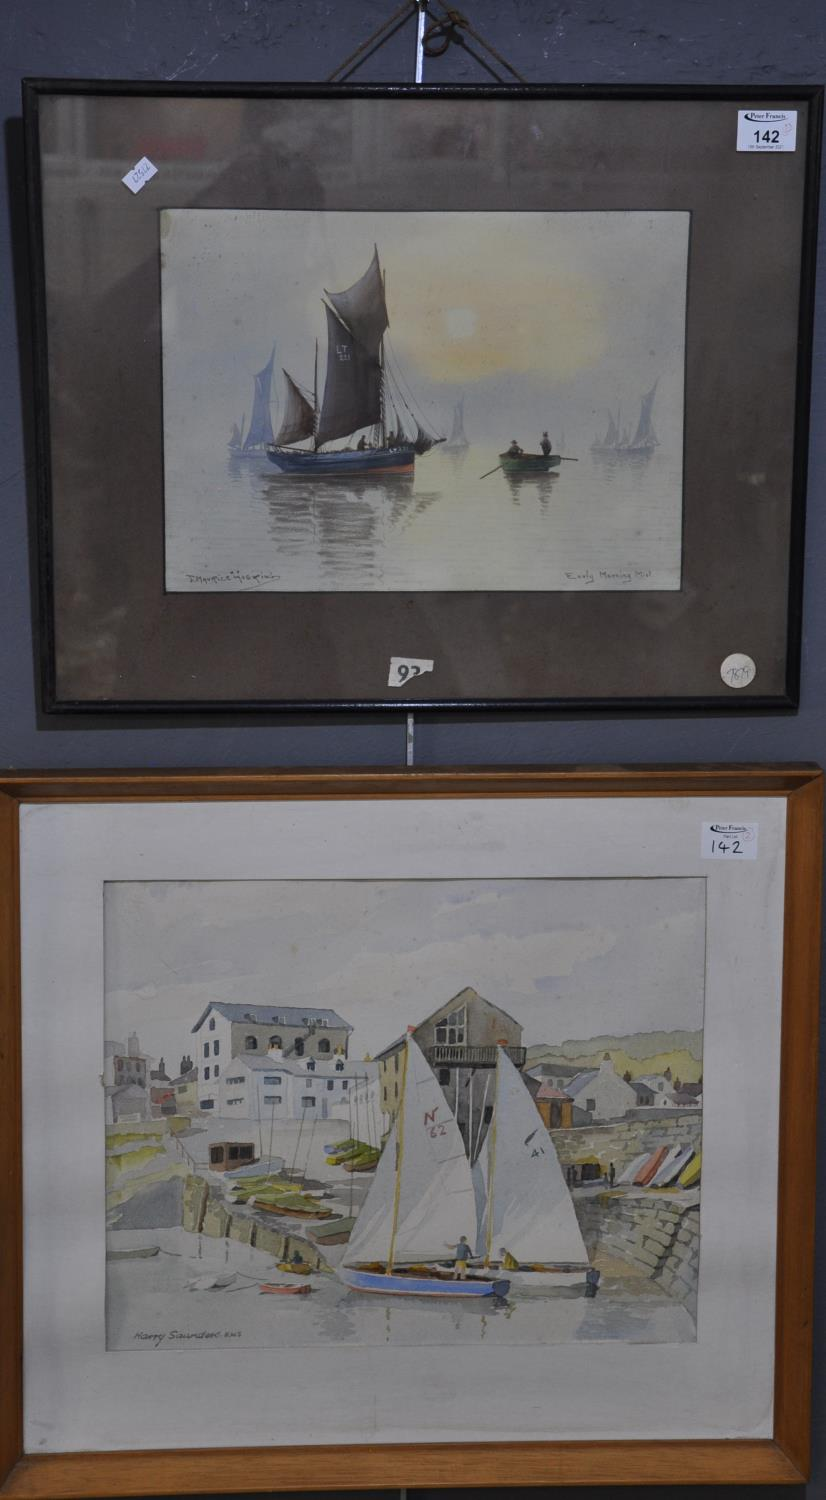 J. Morris Hosking, 'Early Morning Mist', signed, watercolours. 26 x 34cm approx. Together with Harry